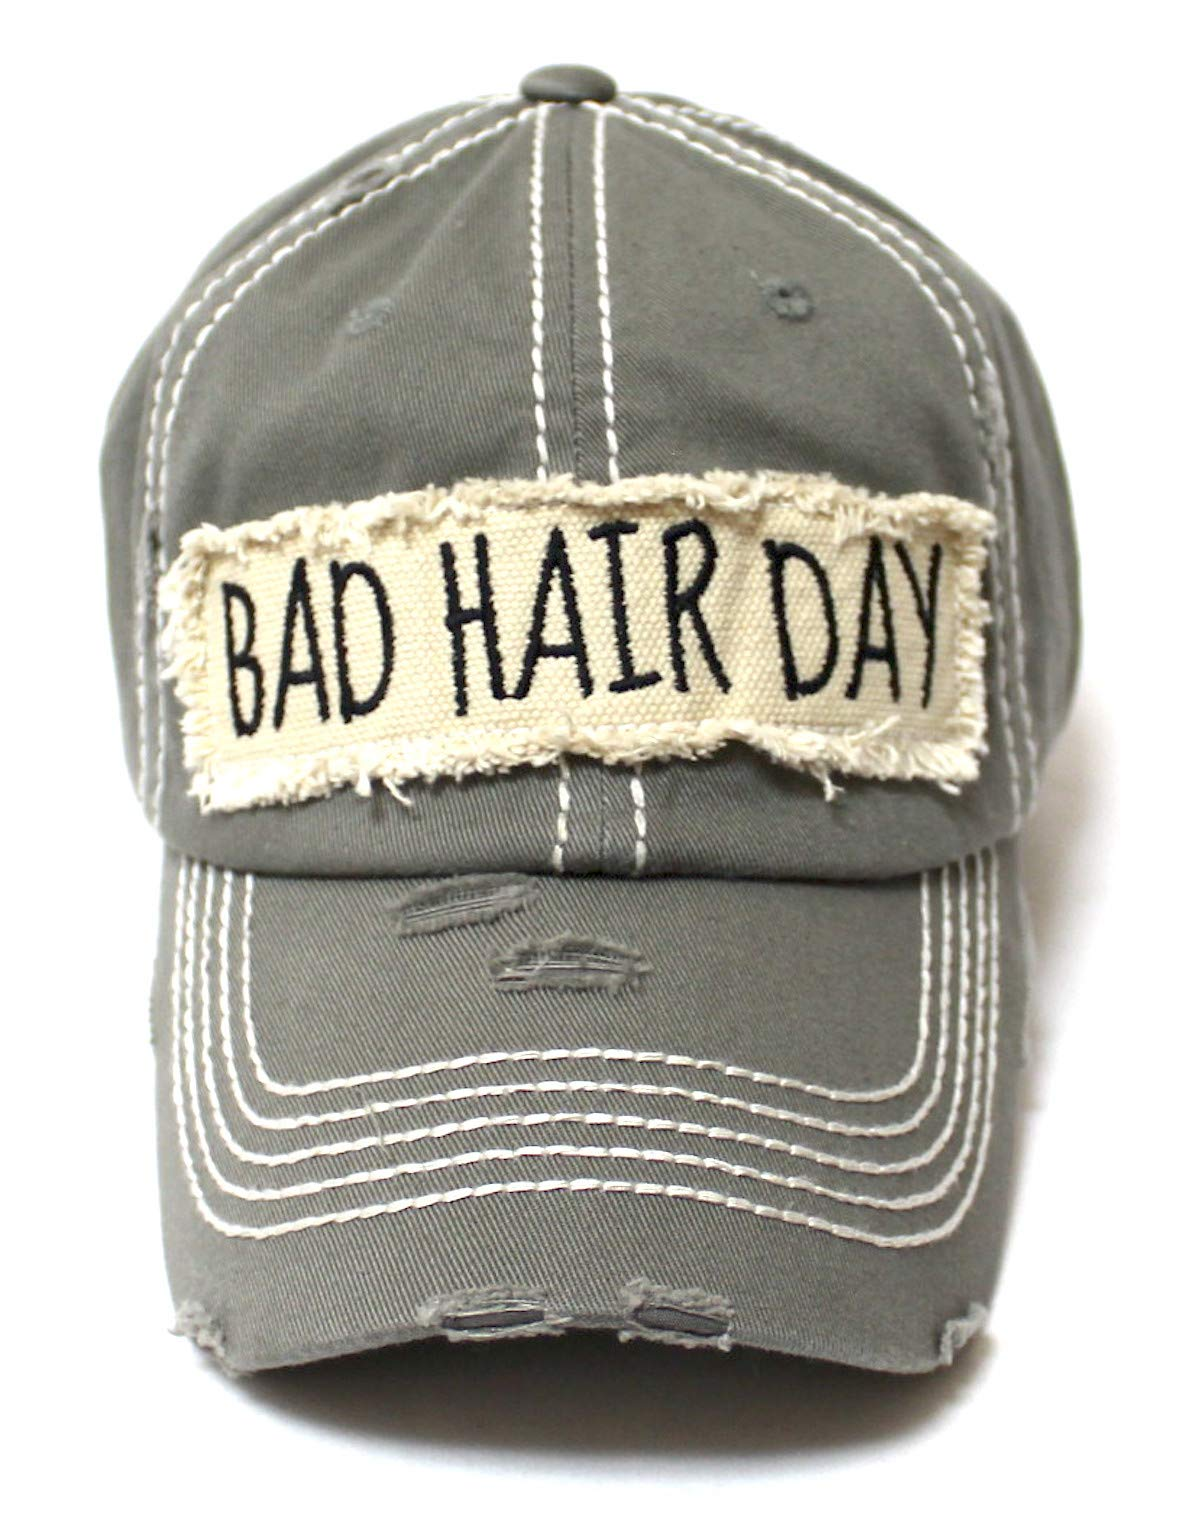 CAPS 'N VINTAGE Women's Ballcap Bad Hair Day Patch Embroidery Baseball Hat, Moss Grey